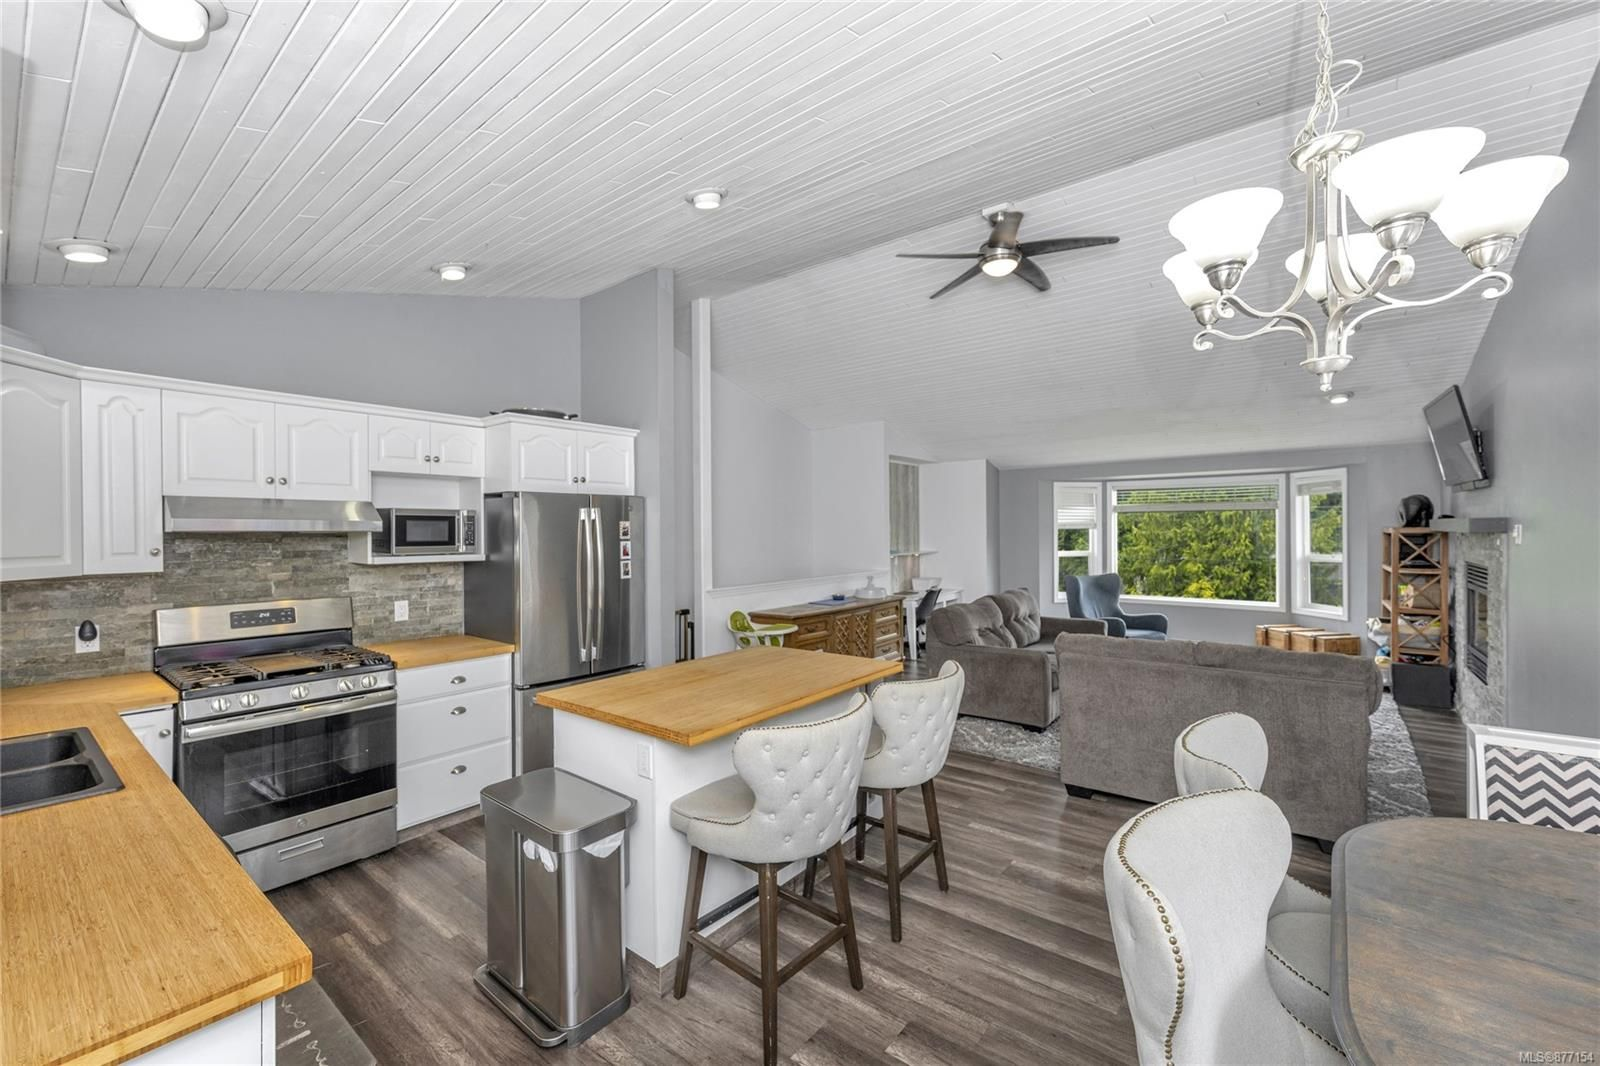 Photo 9: Photos: 2376 Terrace Rd in : ML Shawnigan House for sale (Malahat & Area)  : MLS®# 877154